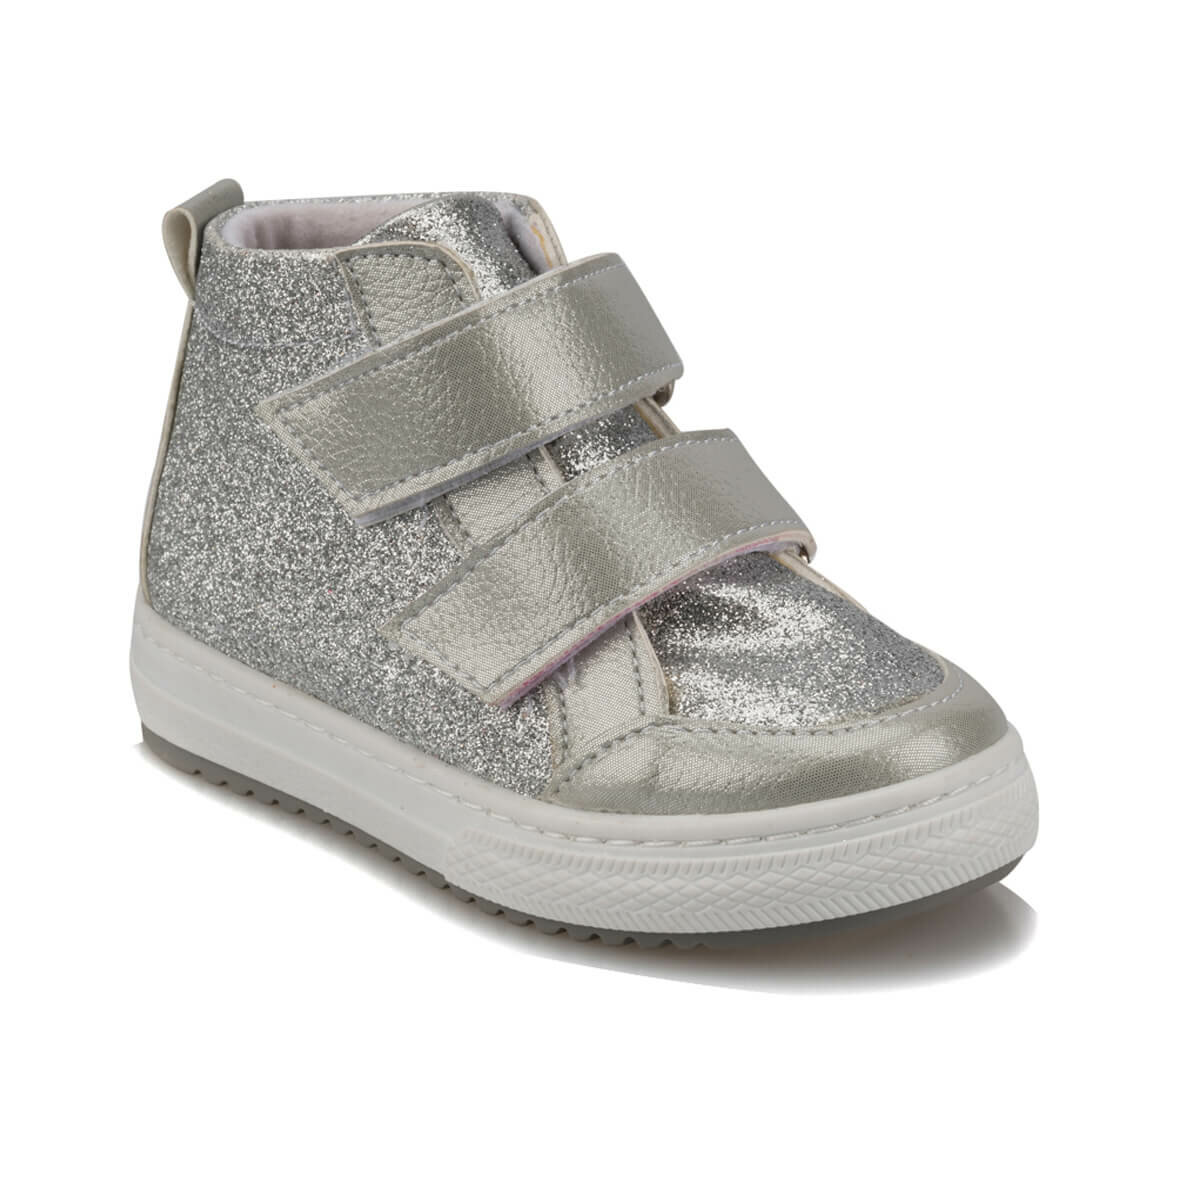 FLO 92.512018.B Silver Female Child Sneaker Shoes Polaris